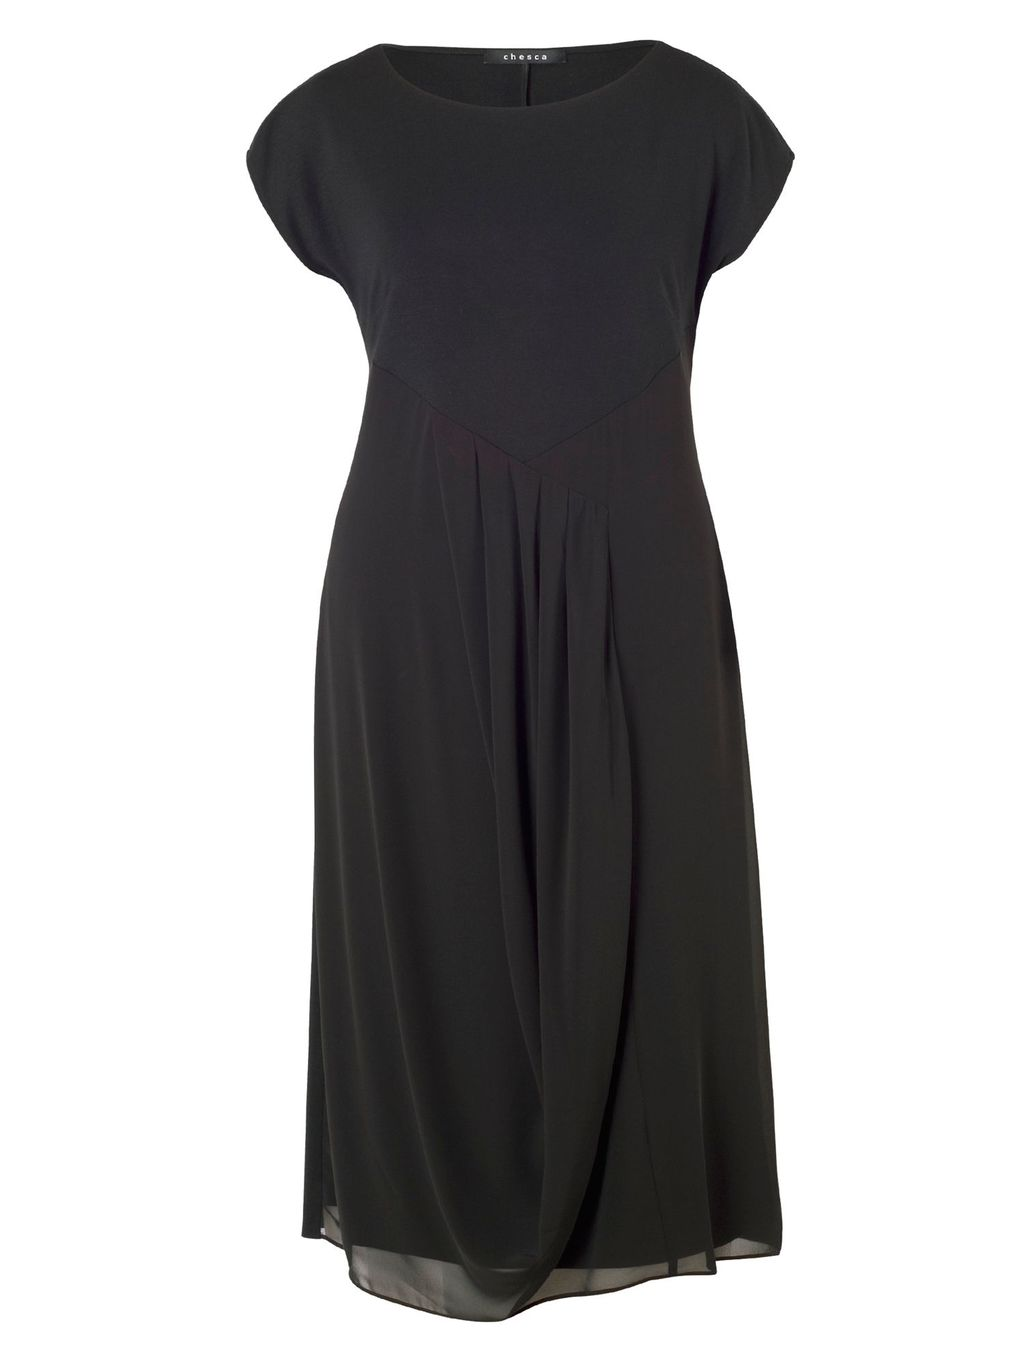 Pleat Trim Jersey/Chiffon Dress, Black - style: shift; length: below the knee; neckline: round neck; pattern: plain; predominant colour: black; occasions: evening; fit: fitted at waist & bust; fibres: viscose/rayon - stretch; sleeve length: short sleeve; sleeve style: standard; texture group: sheer fabrics/chiffon/organza etc.; pattern type: fabric; season: a/w 2015; wardrobe: event